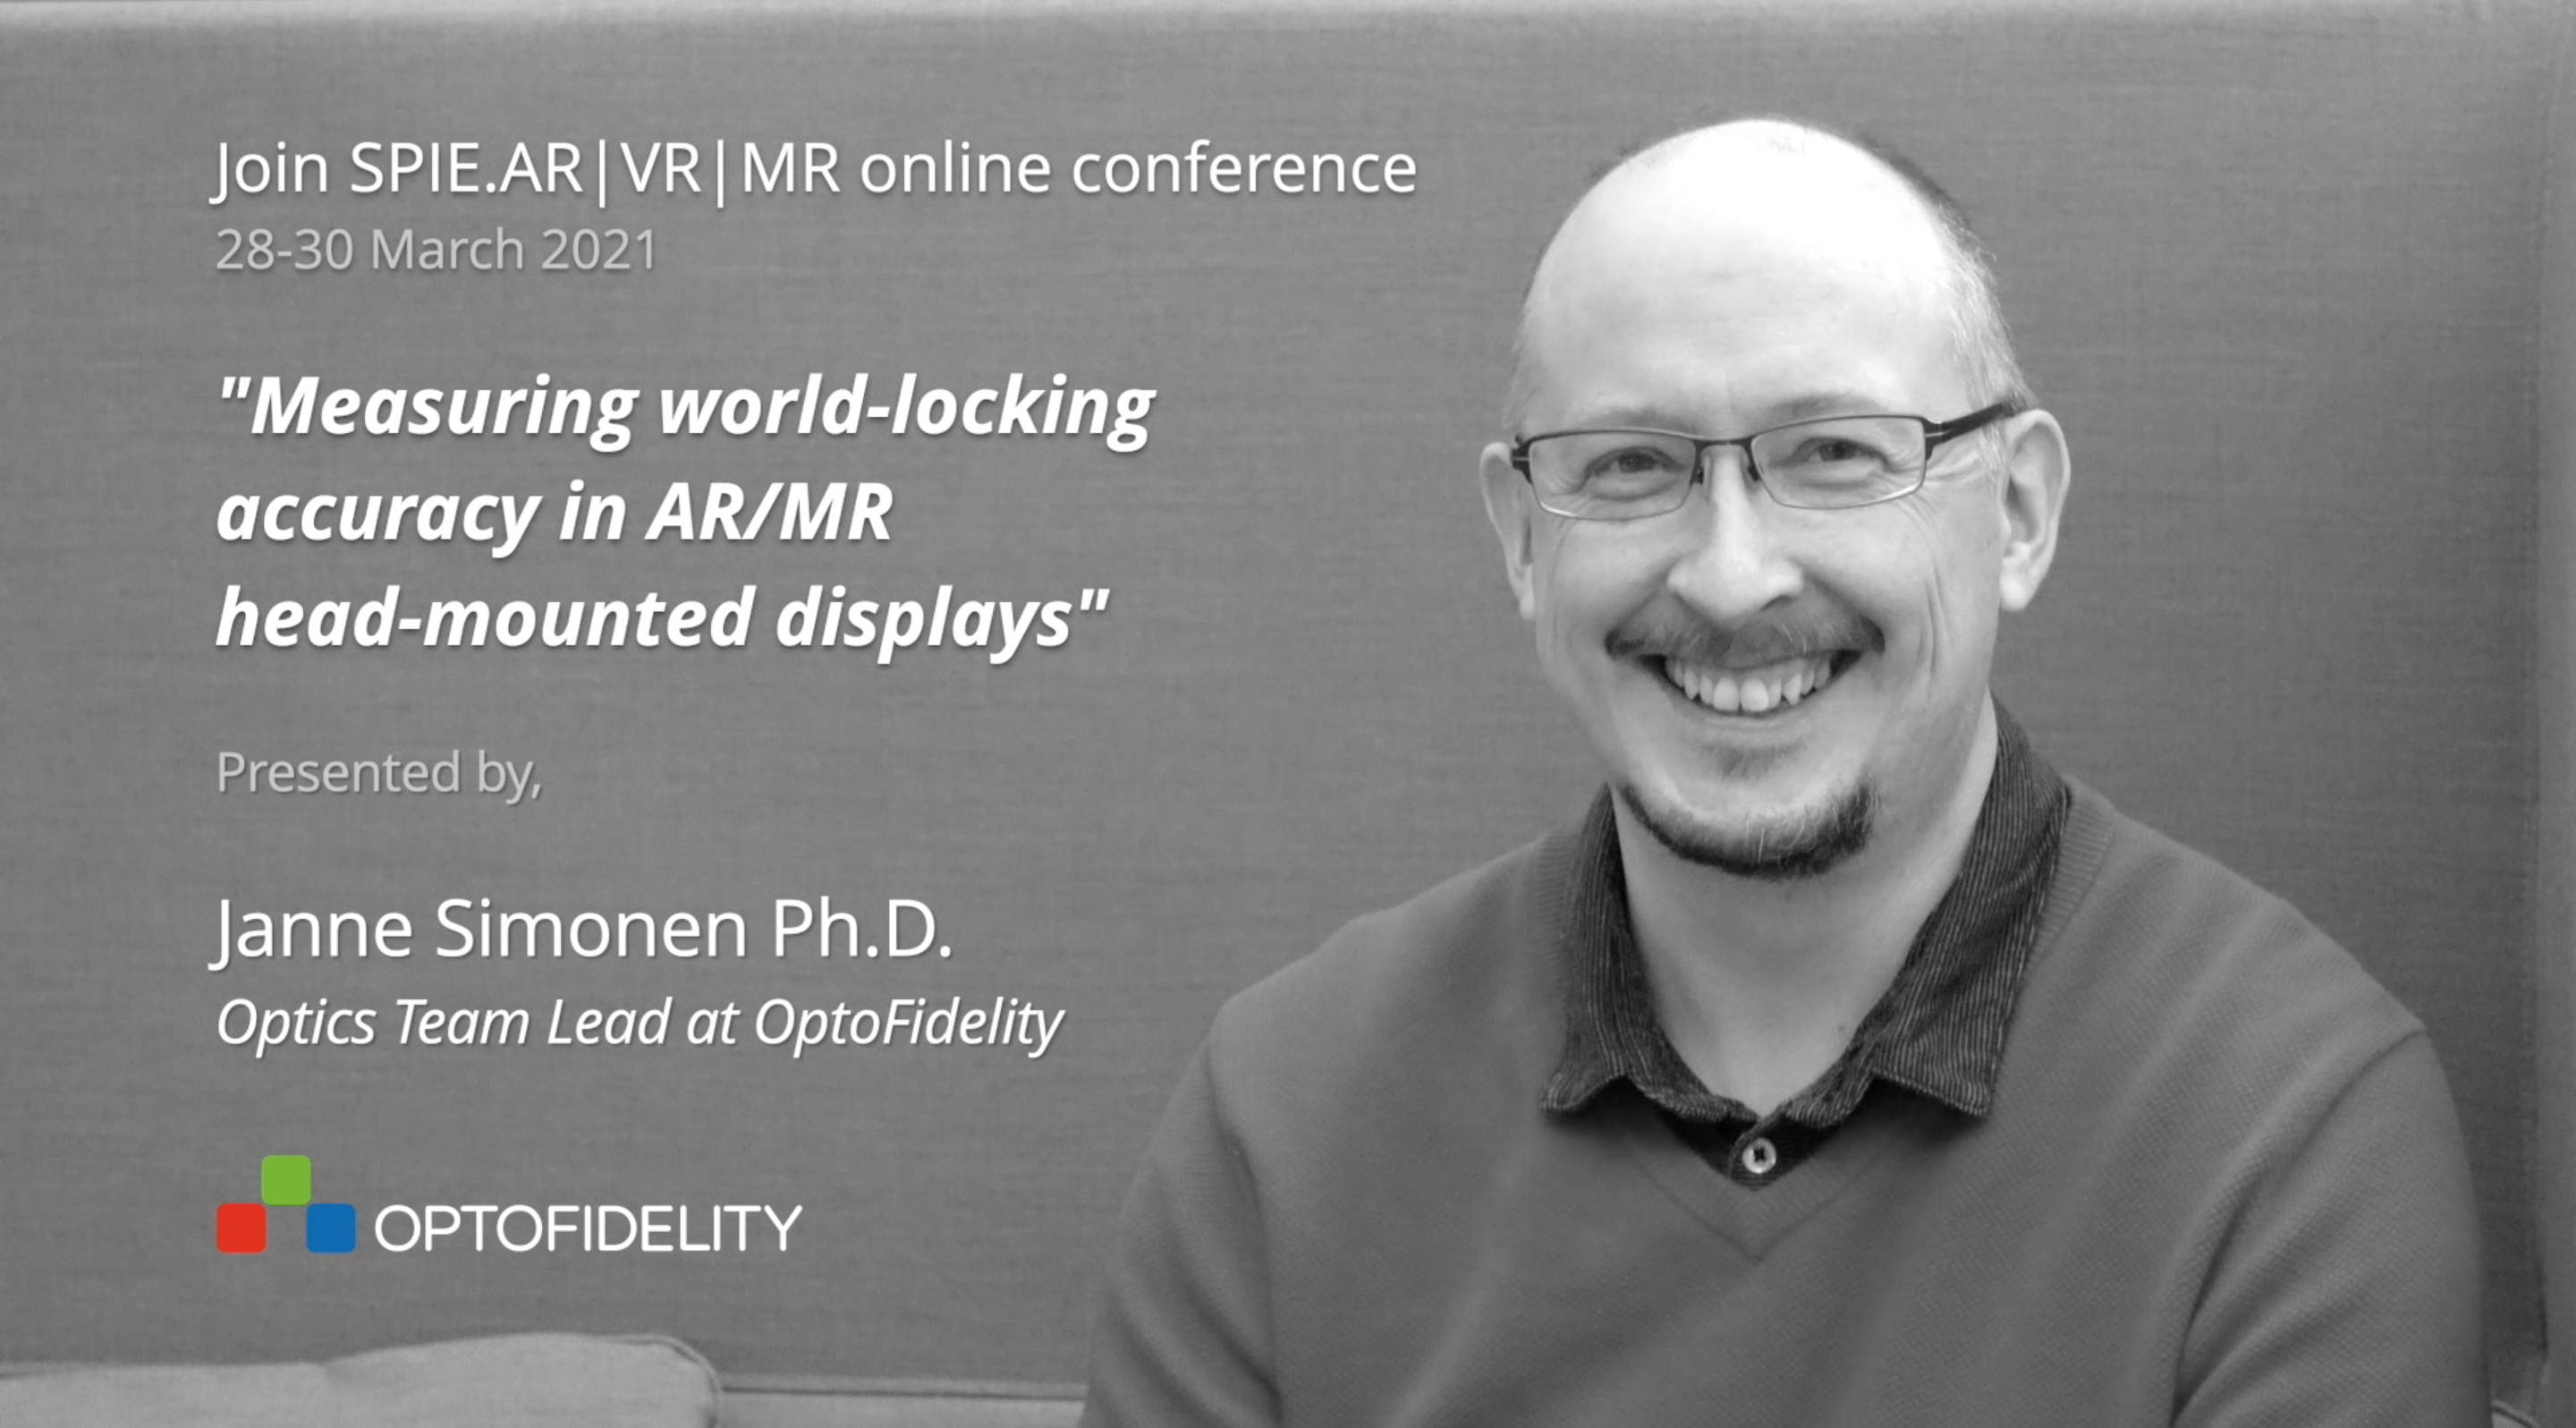 Join SPIE.AR|VR|MR online conference on 28-30 March 2021 and learn how to measure world-locking accuracy in AR/MR head-mounted displays, presented by OptoFidelity.